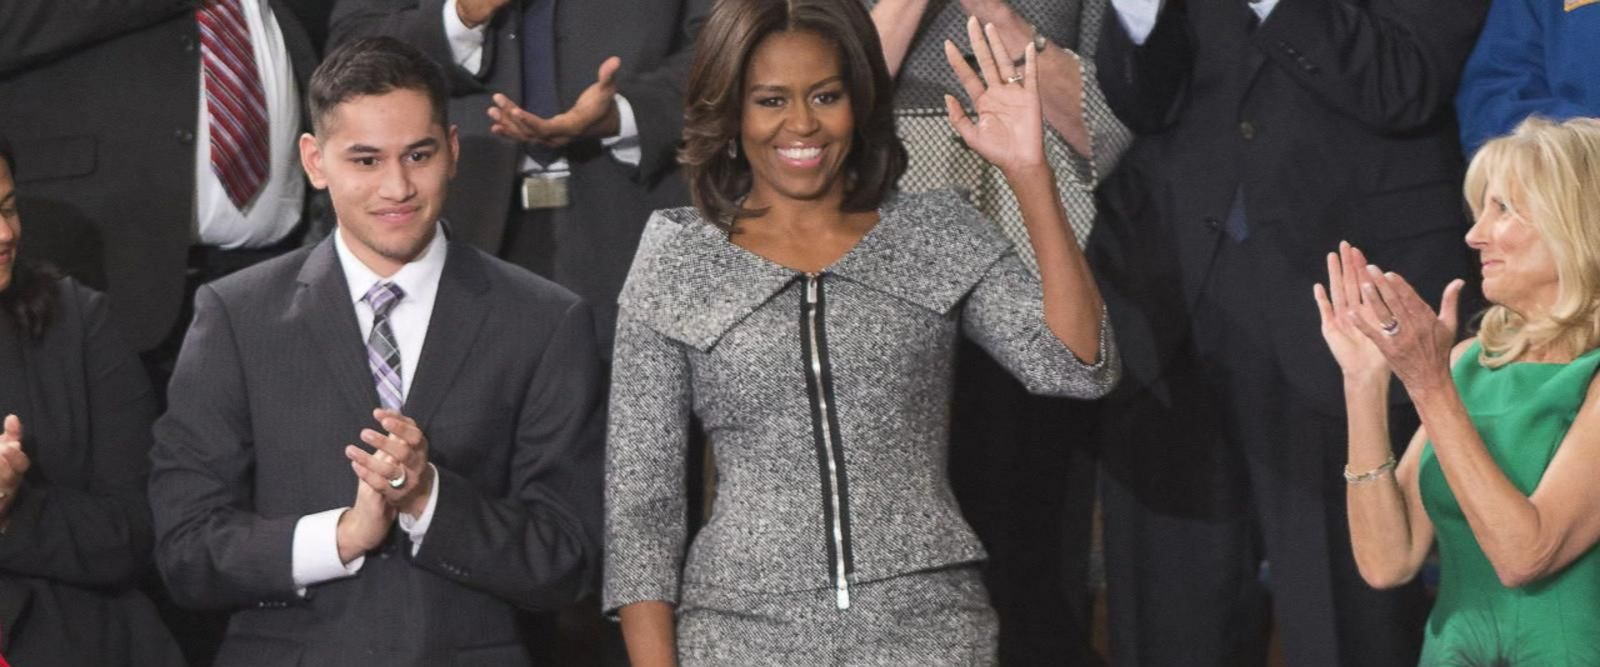 VIDEO: Michelle Obama's Influence on Fashion and Culture